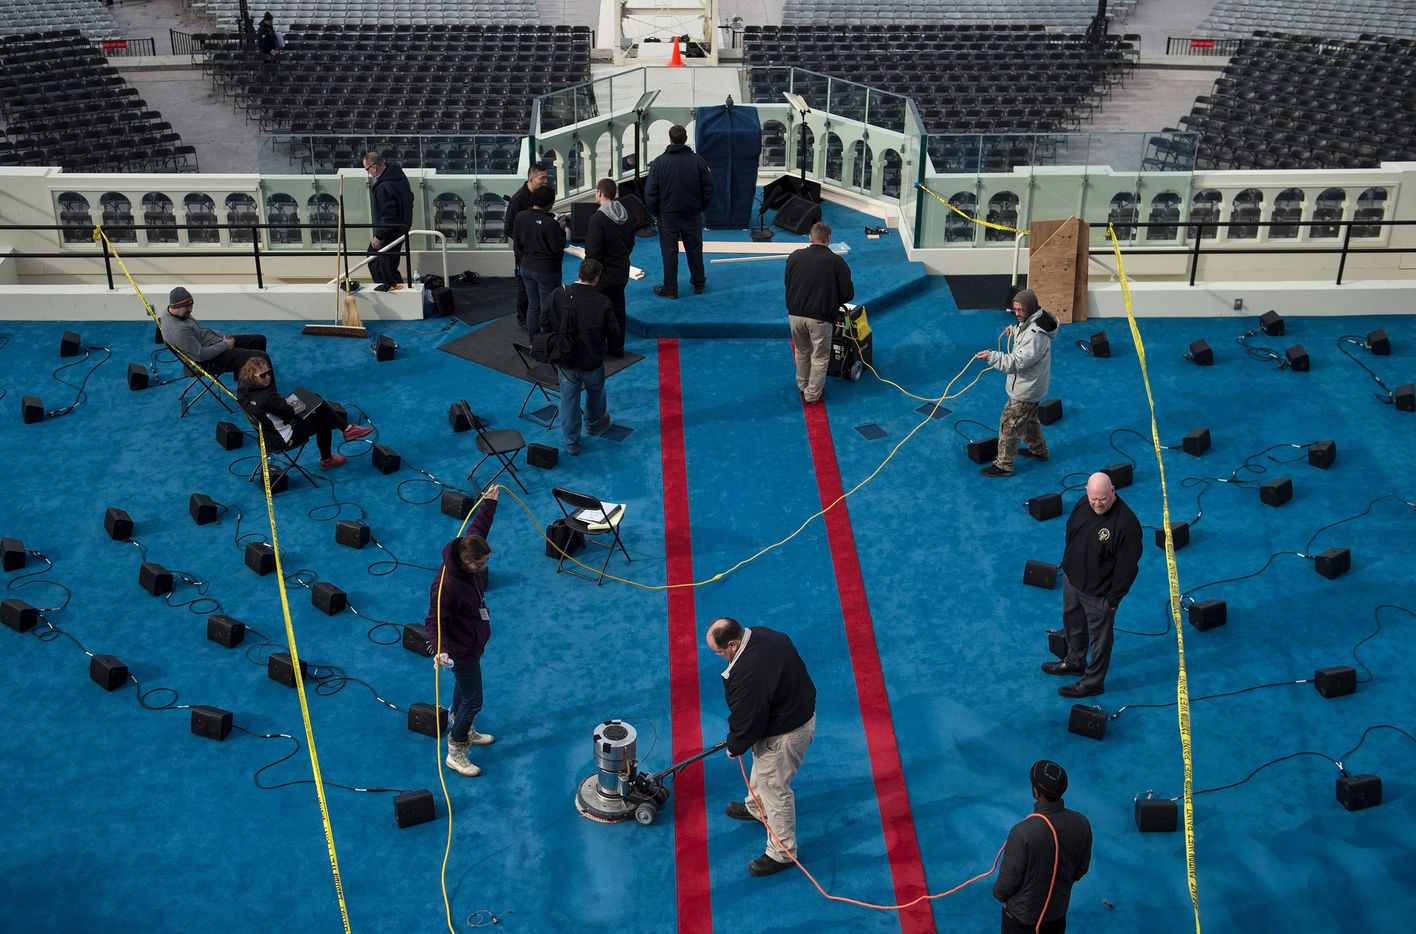 Workers clean the carpet on the Inauguration platform in preparation for tomorrow's Inauguration on Capitol Hill on January 19, 2017 in Washington, DC. With one day to go before he takes the oath of office as the 45th US president, Donald Trump arrives in Washington Thursday determined to transform US politics over the next four years.